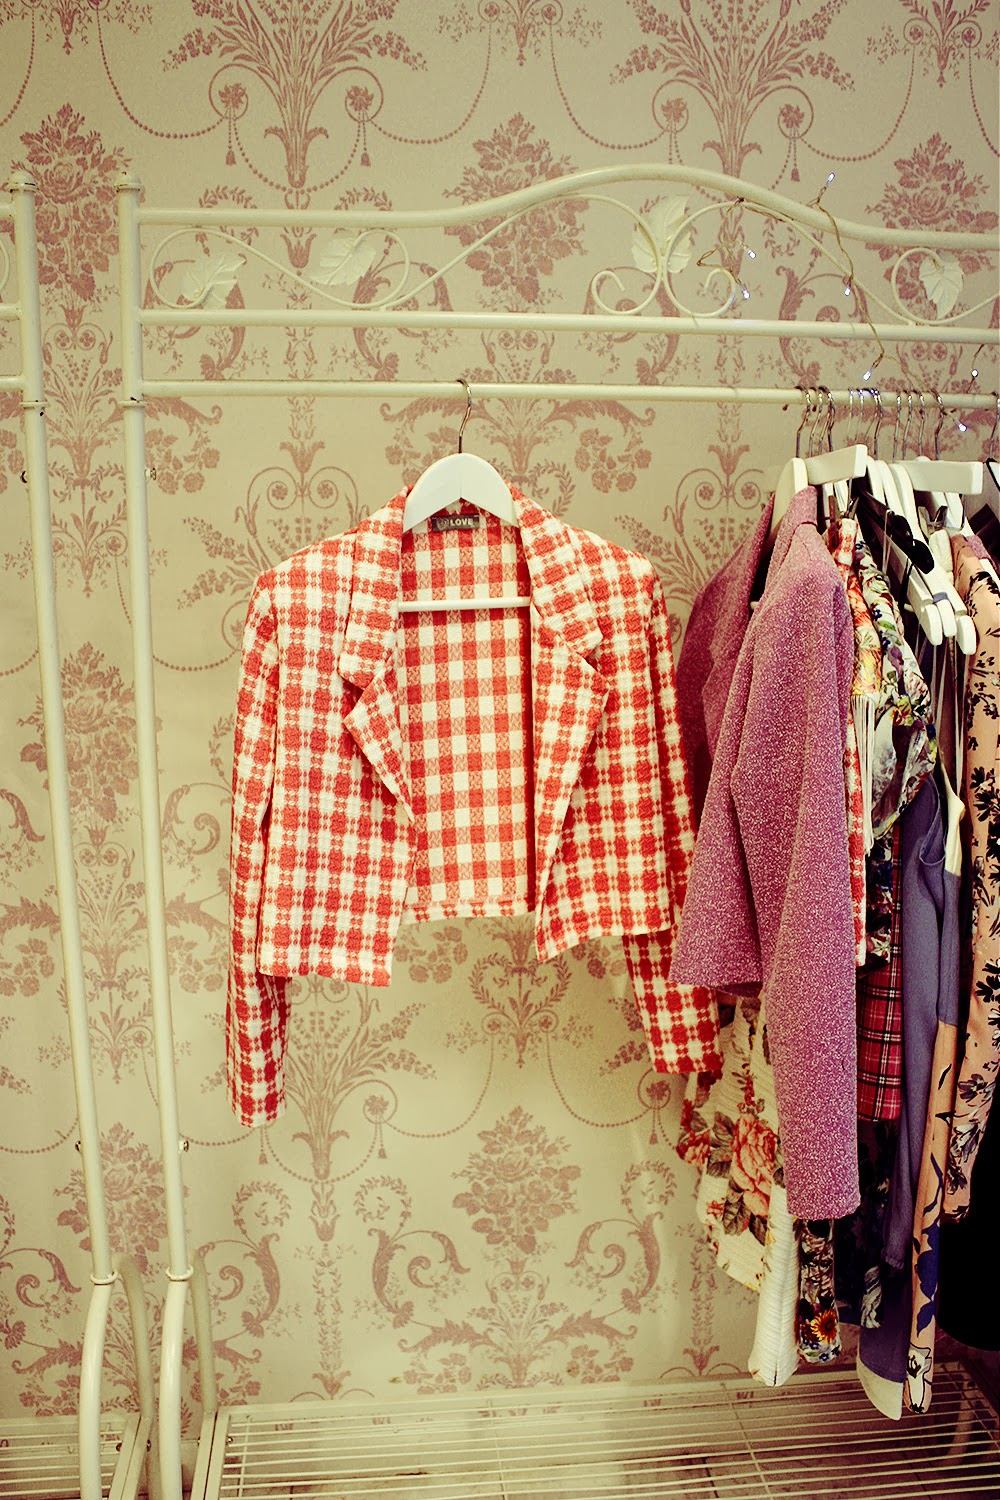 IN LOVE WITH FASHION PRESS DAY